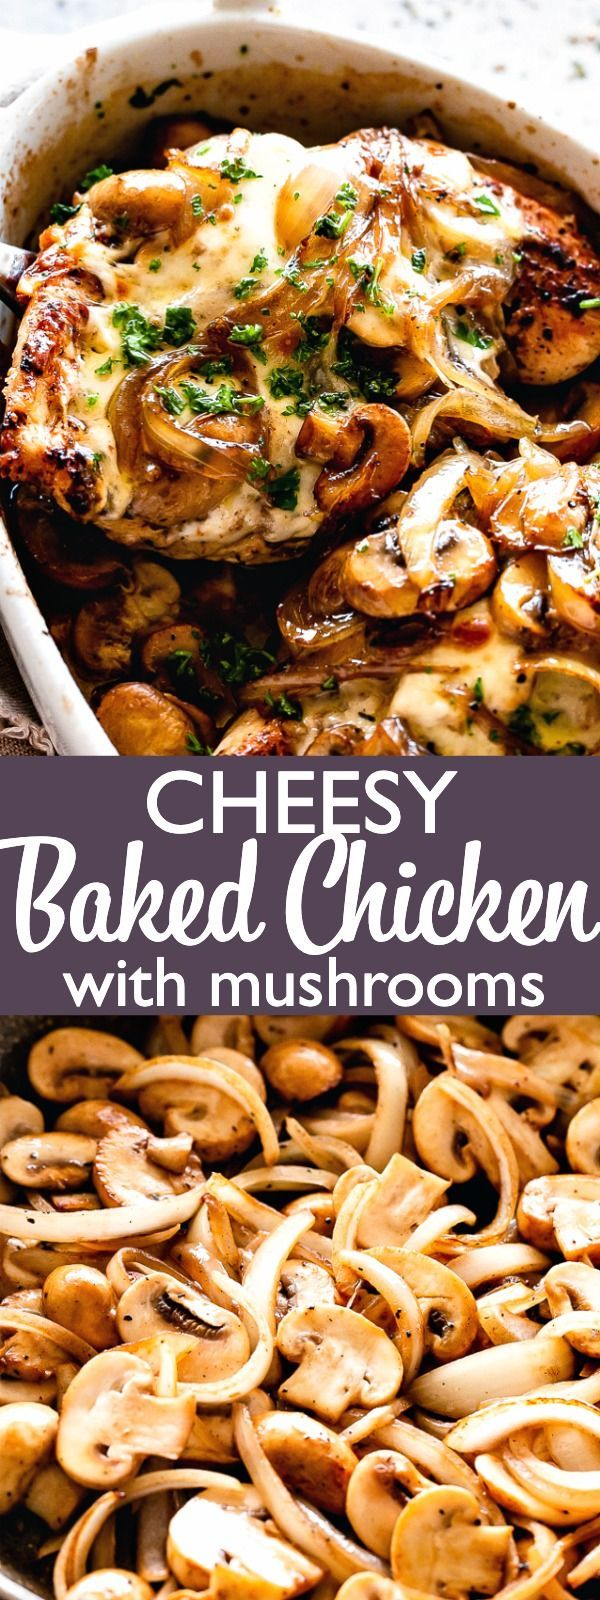 Cheesy Baked Chicken with Mushrooms – Low carb recipe for Baked chicken breasts …